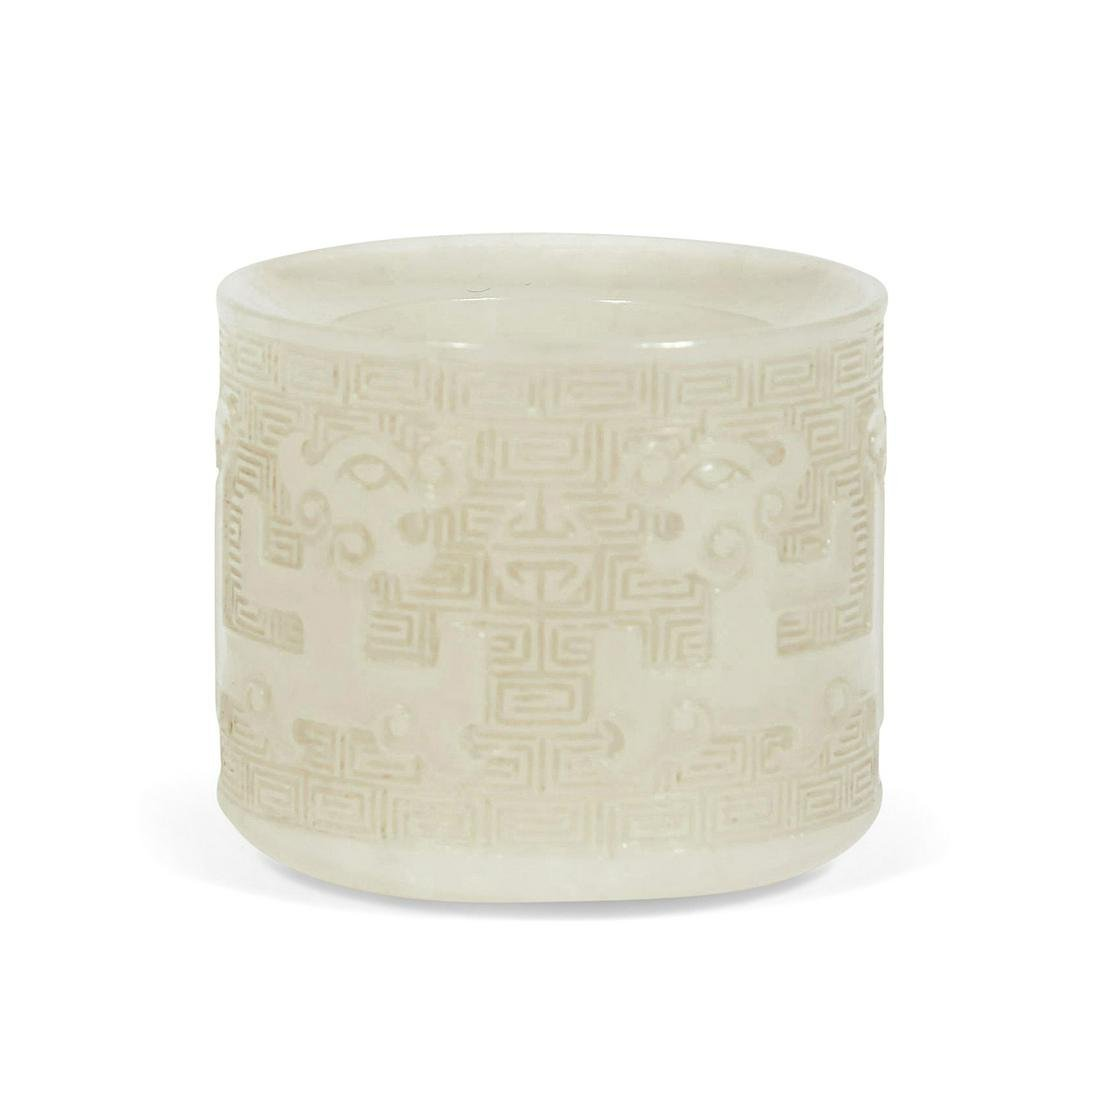 CHRISTIE'S: QING DYN. CARVED JADE ARCHAISTIC ARCHER'S R